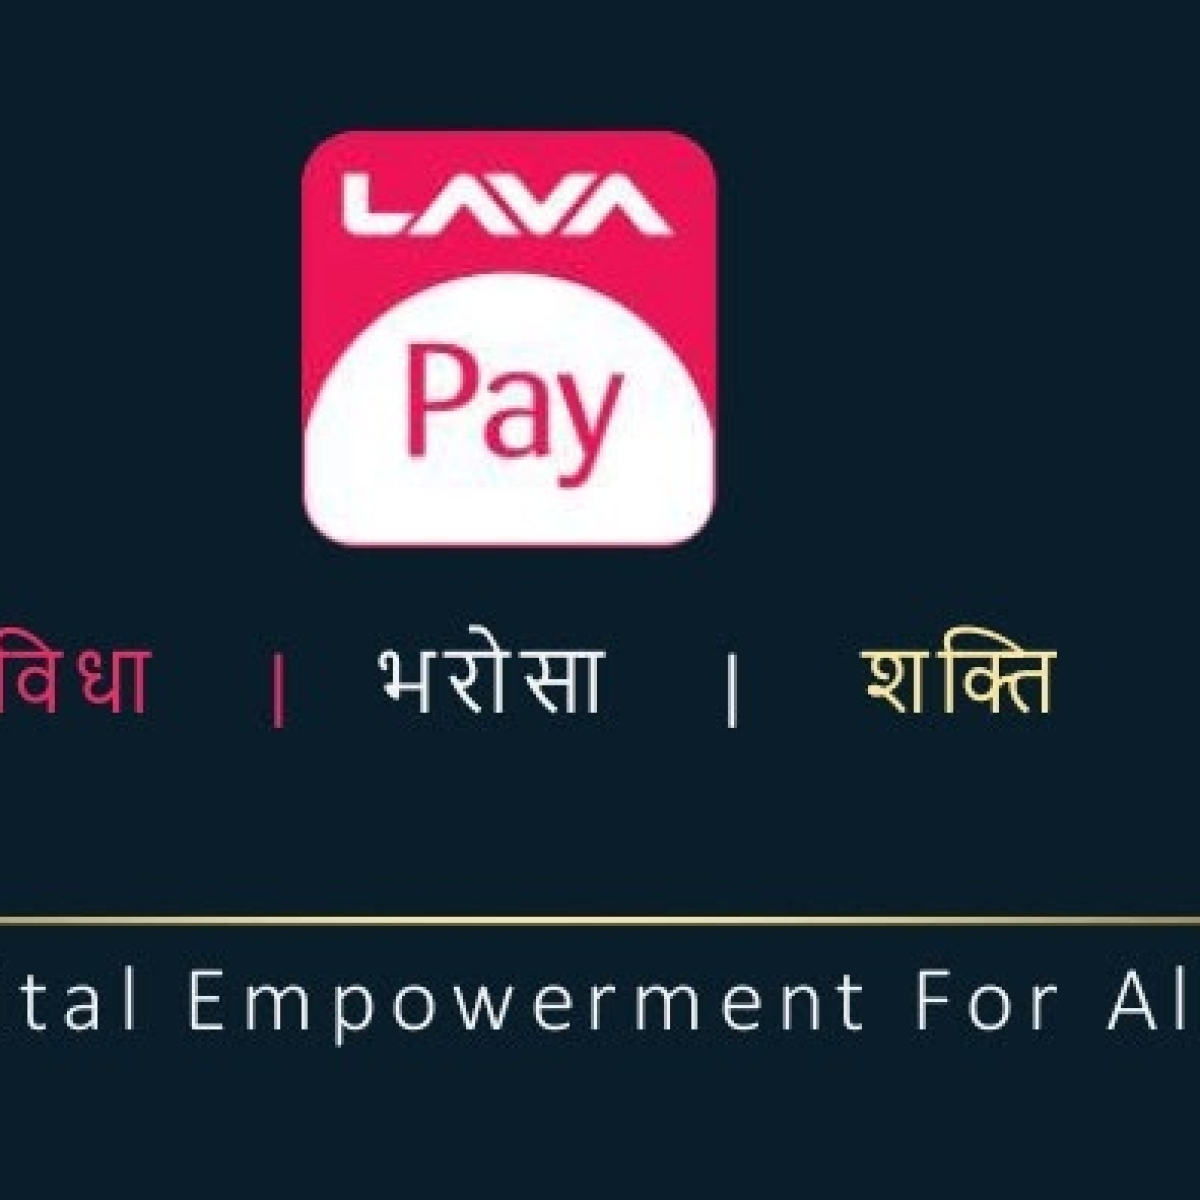 LAVA launches non-internet based digital payment solution